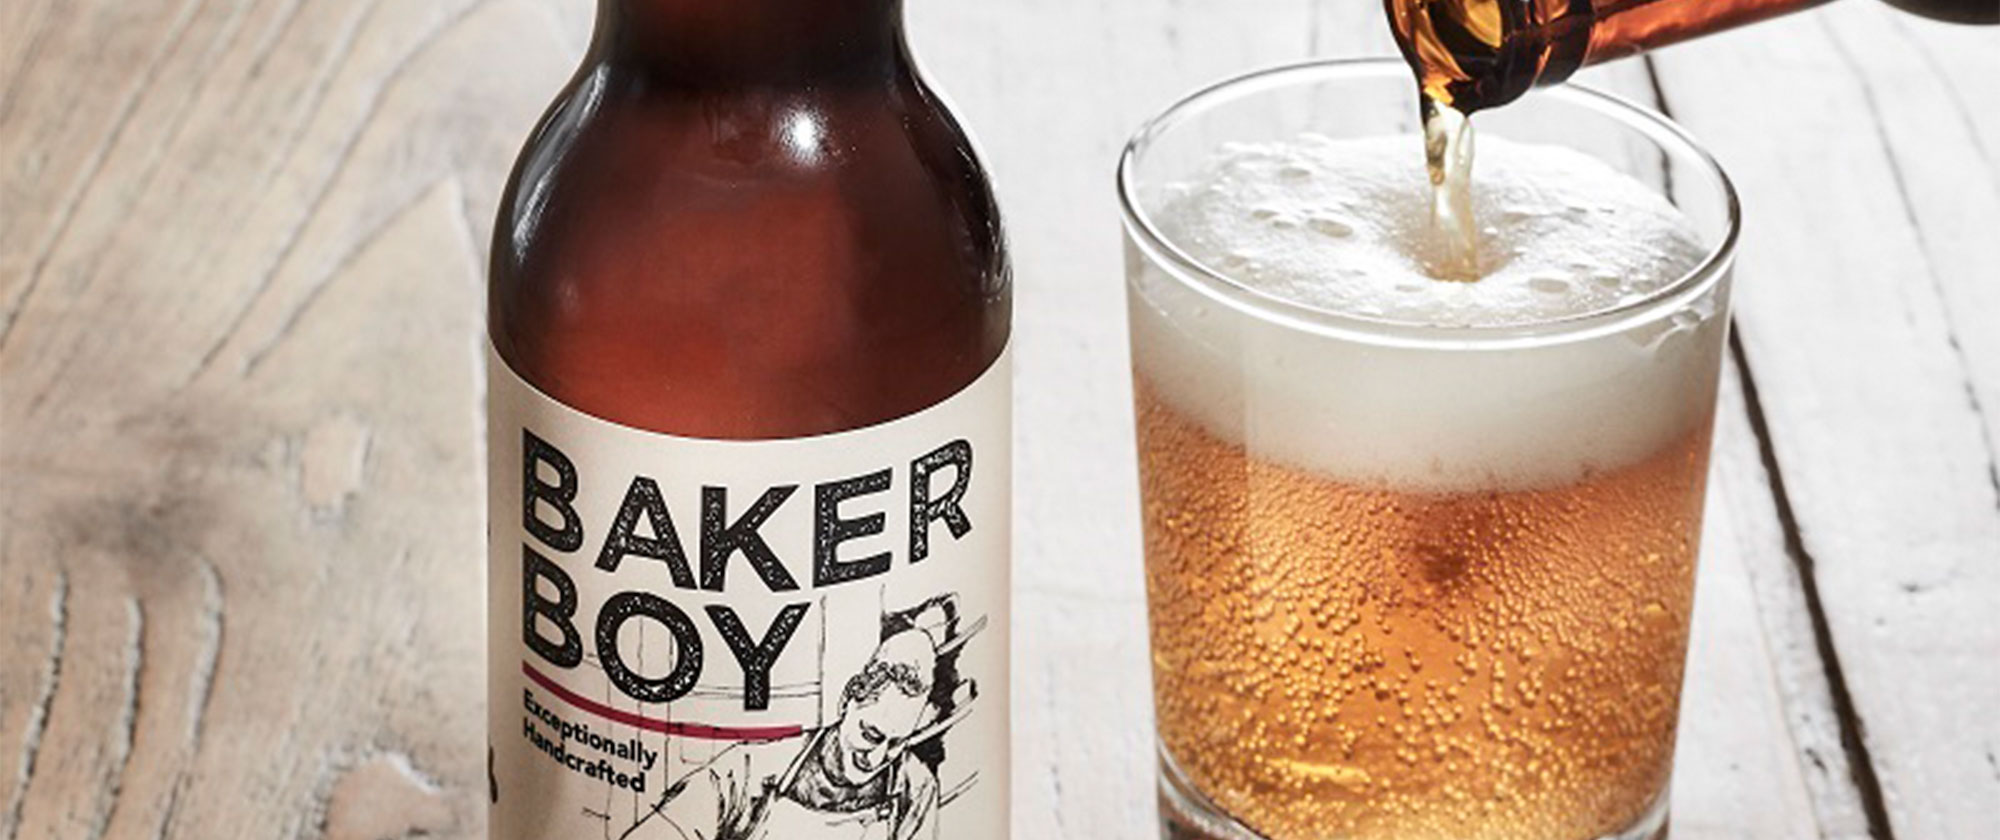 Baker & Cook Launches A Refreshing, One-Of-A-Kind Summer Ale!